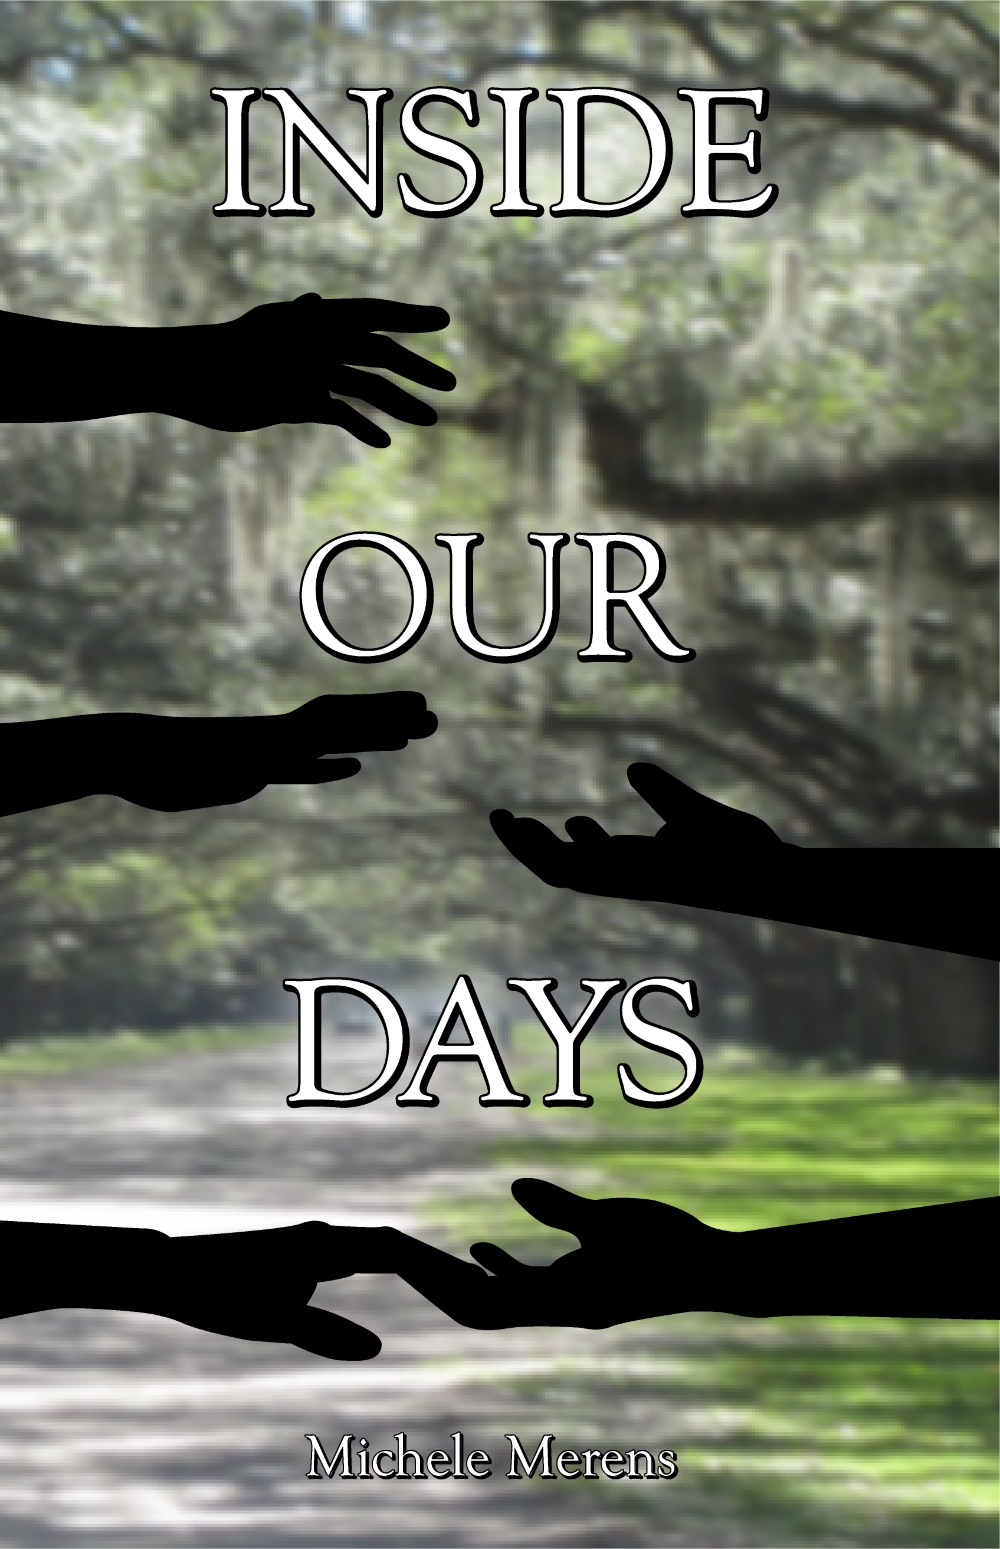 Inside Our Days